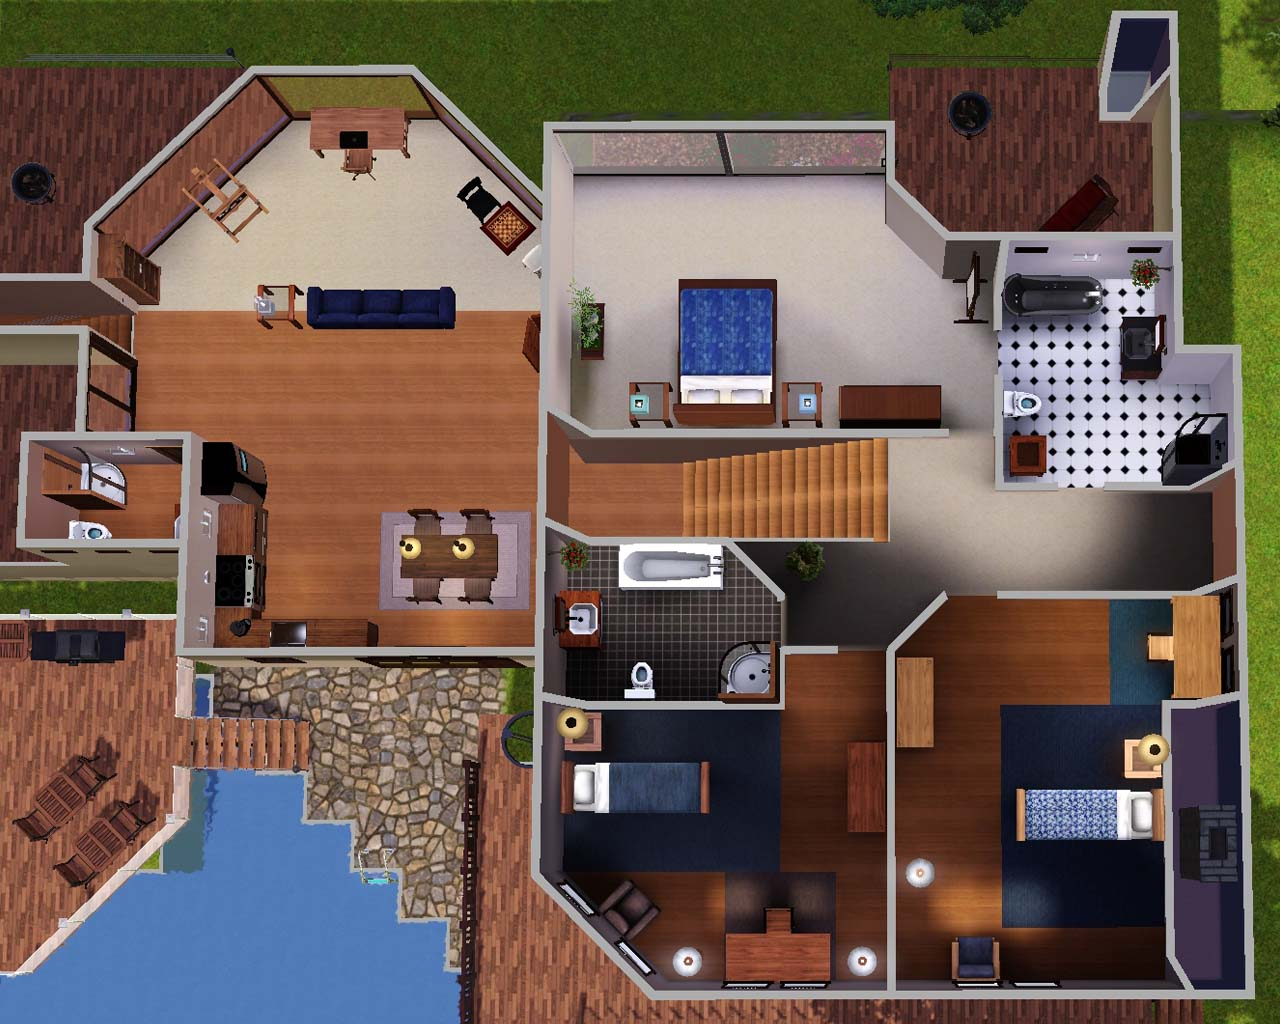 Mod The Sims Sunset Cliffs Cool BR BA Ocean View Home - Cool sims 3 houses